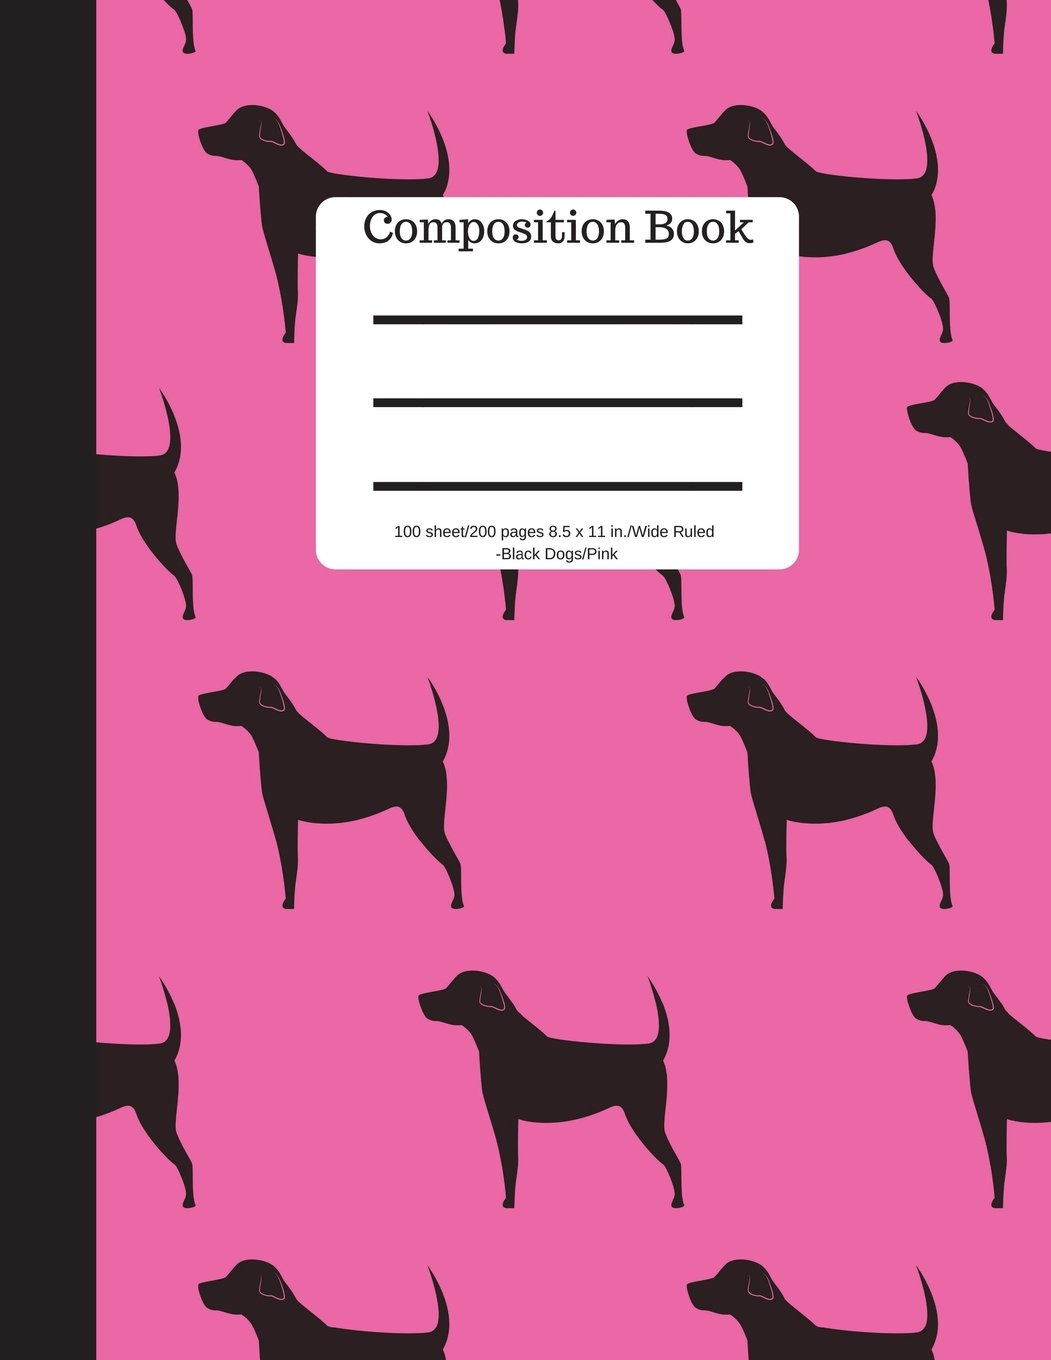 Download Composition Book 100 sheet/200 pages 8.5 x 11 in.-Wide Ruled-Black Dogs Pink: Puppy Notebook for School Kids  Student Journal  Writing Composition Book  Soft Cover PDF